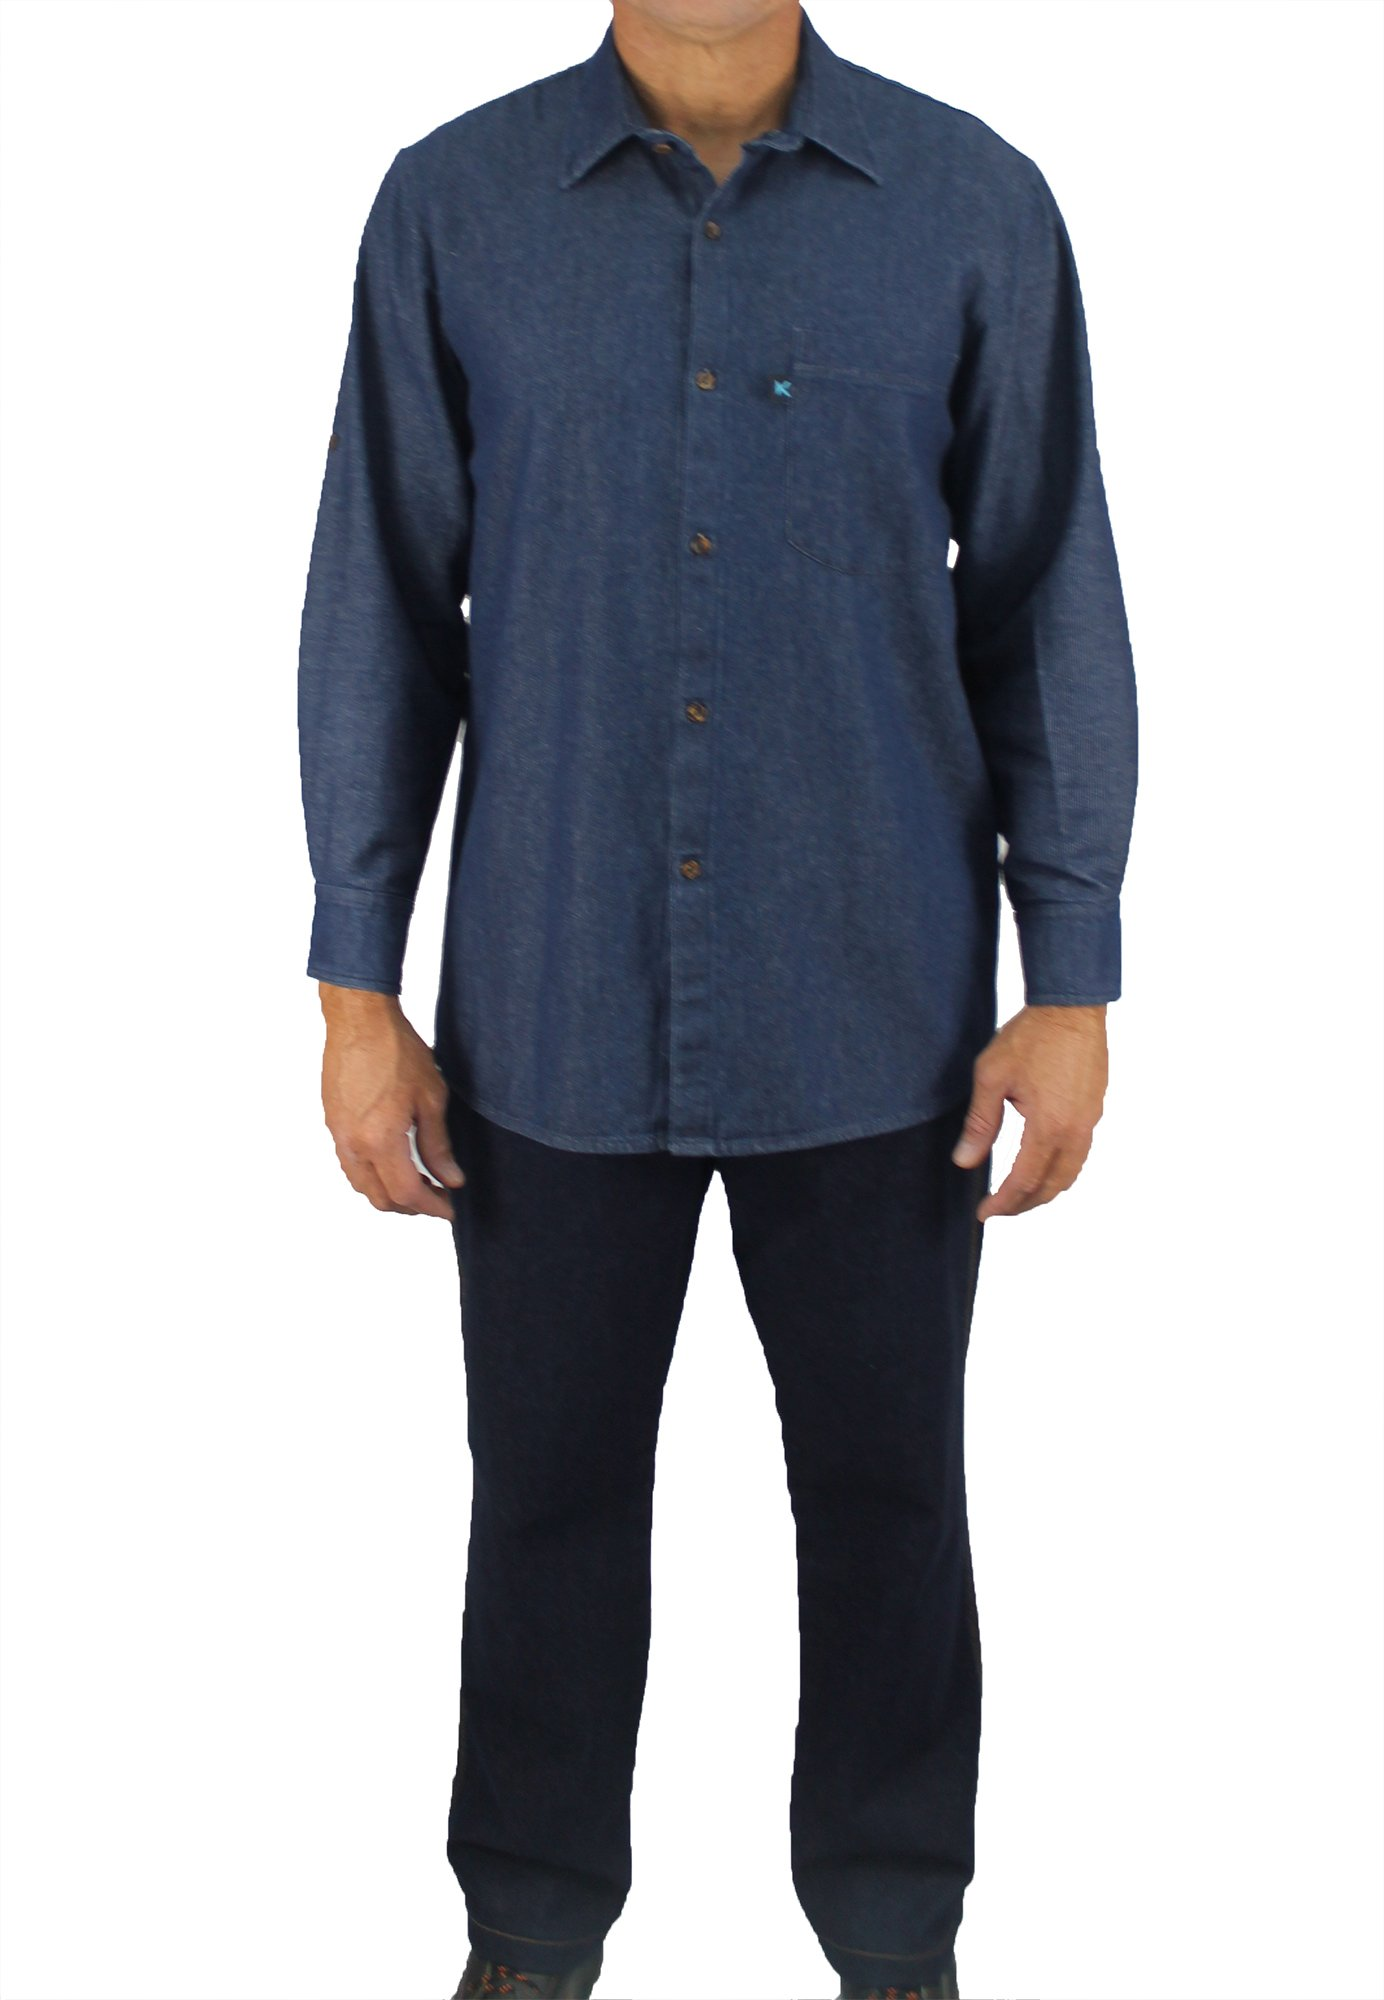 Kolossus Men's Lightweight 100% Cotton Long Sleeve Work Shirt with Pockets (Chambray, Large)